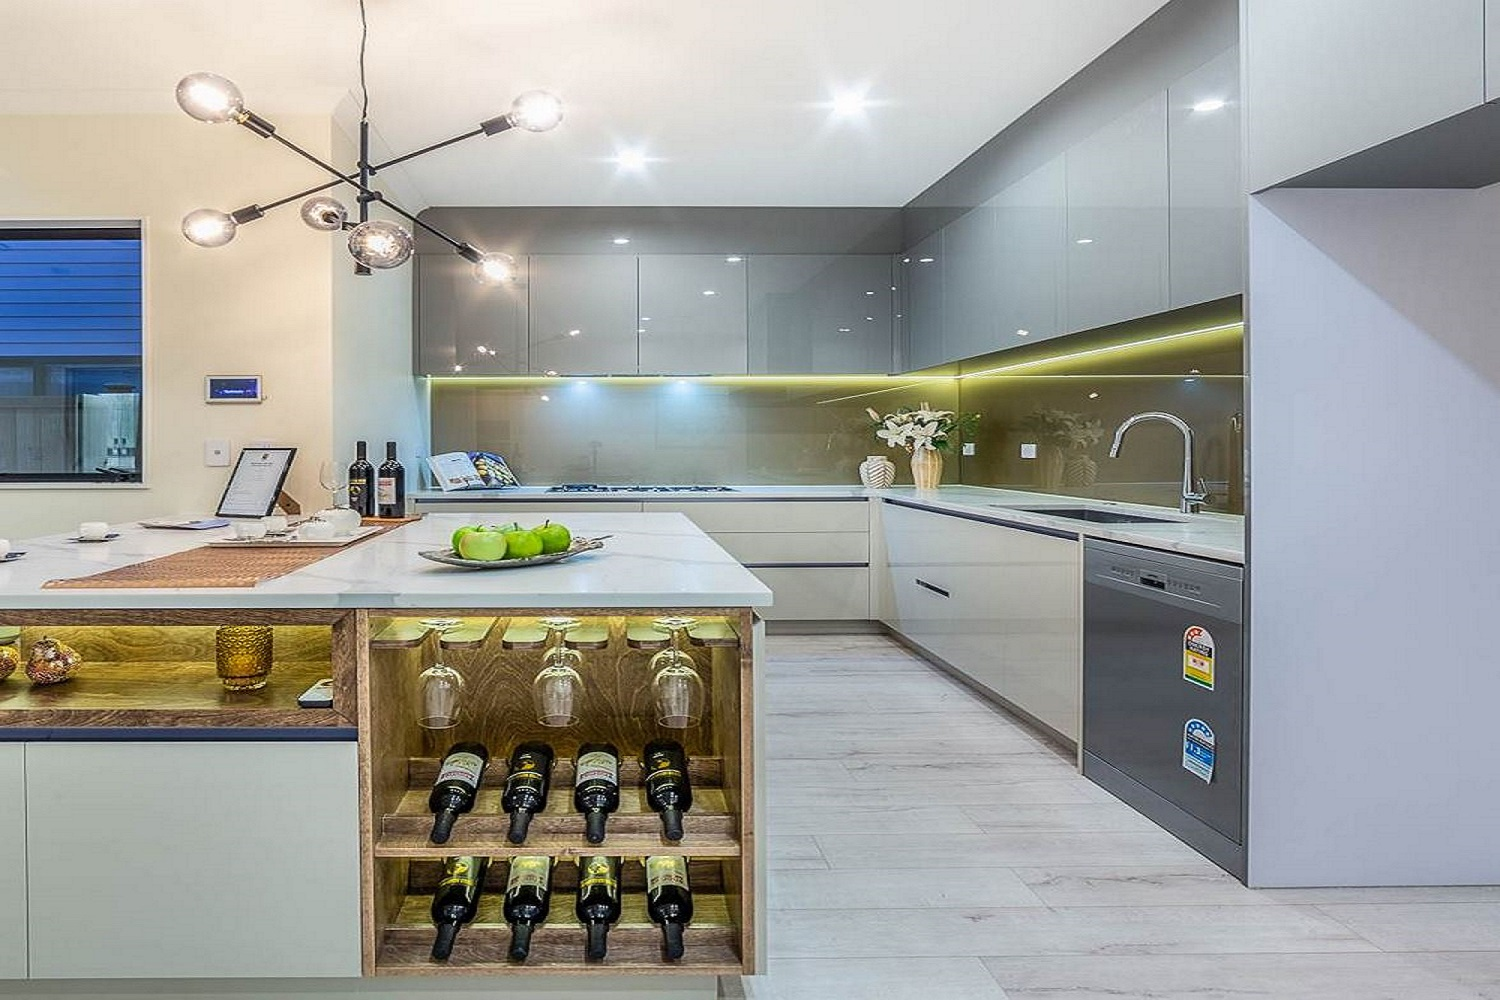 Hobsonville's new kitchen